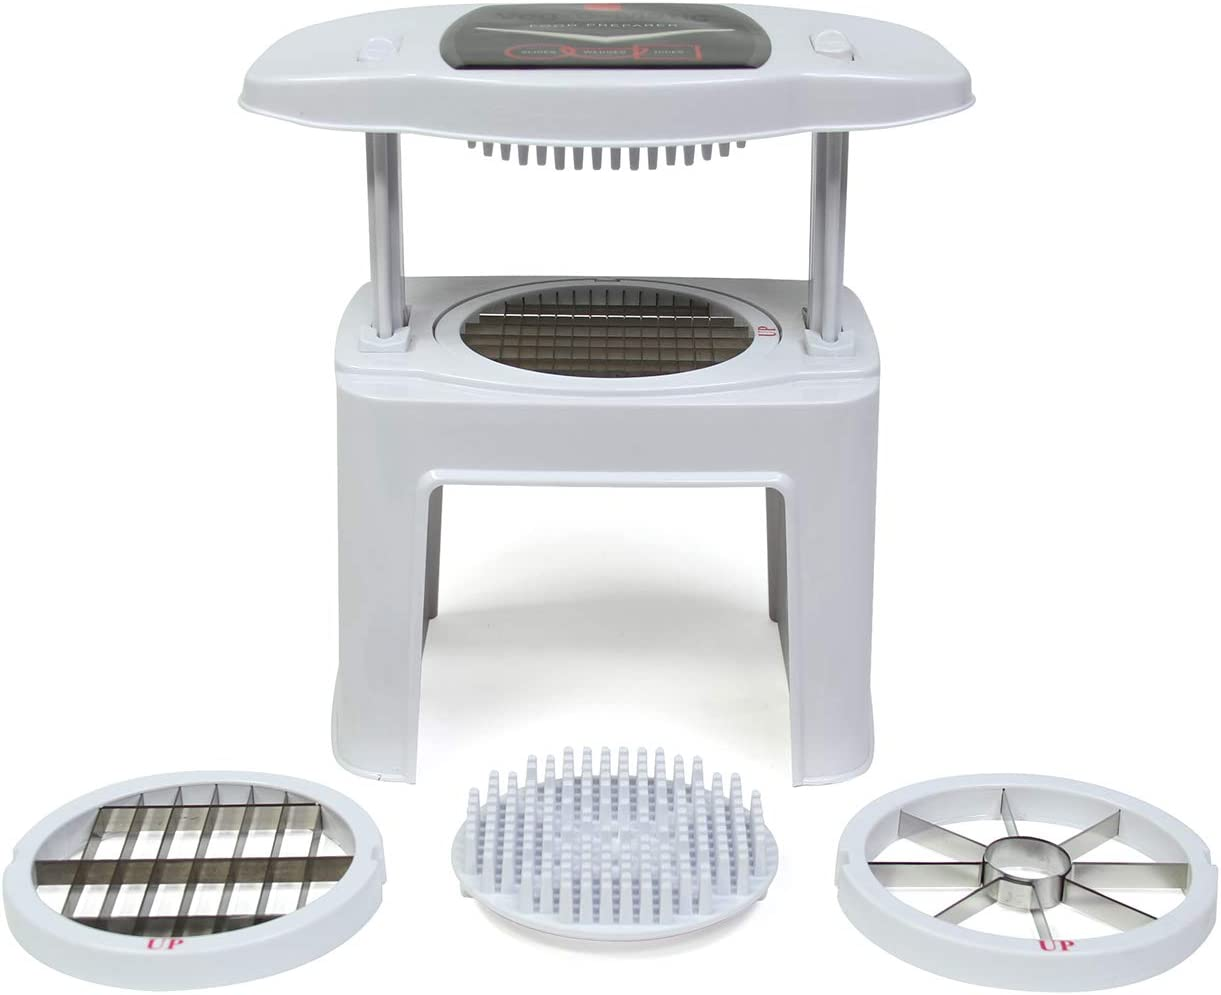 Ronco Veg-O-Matic, Fruit and Vegetable Chopper, Interchangeable Stainless-Steel Blades, Food Cutter, Dishwasher Safe